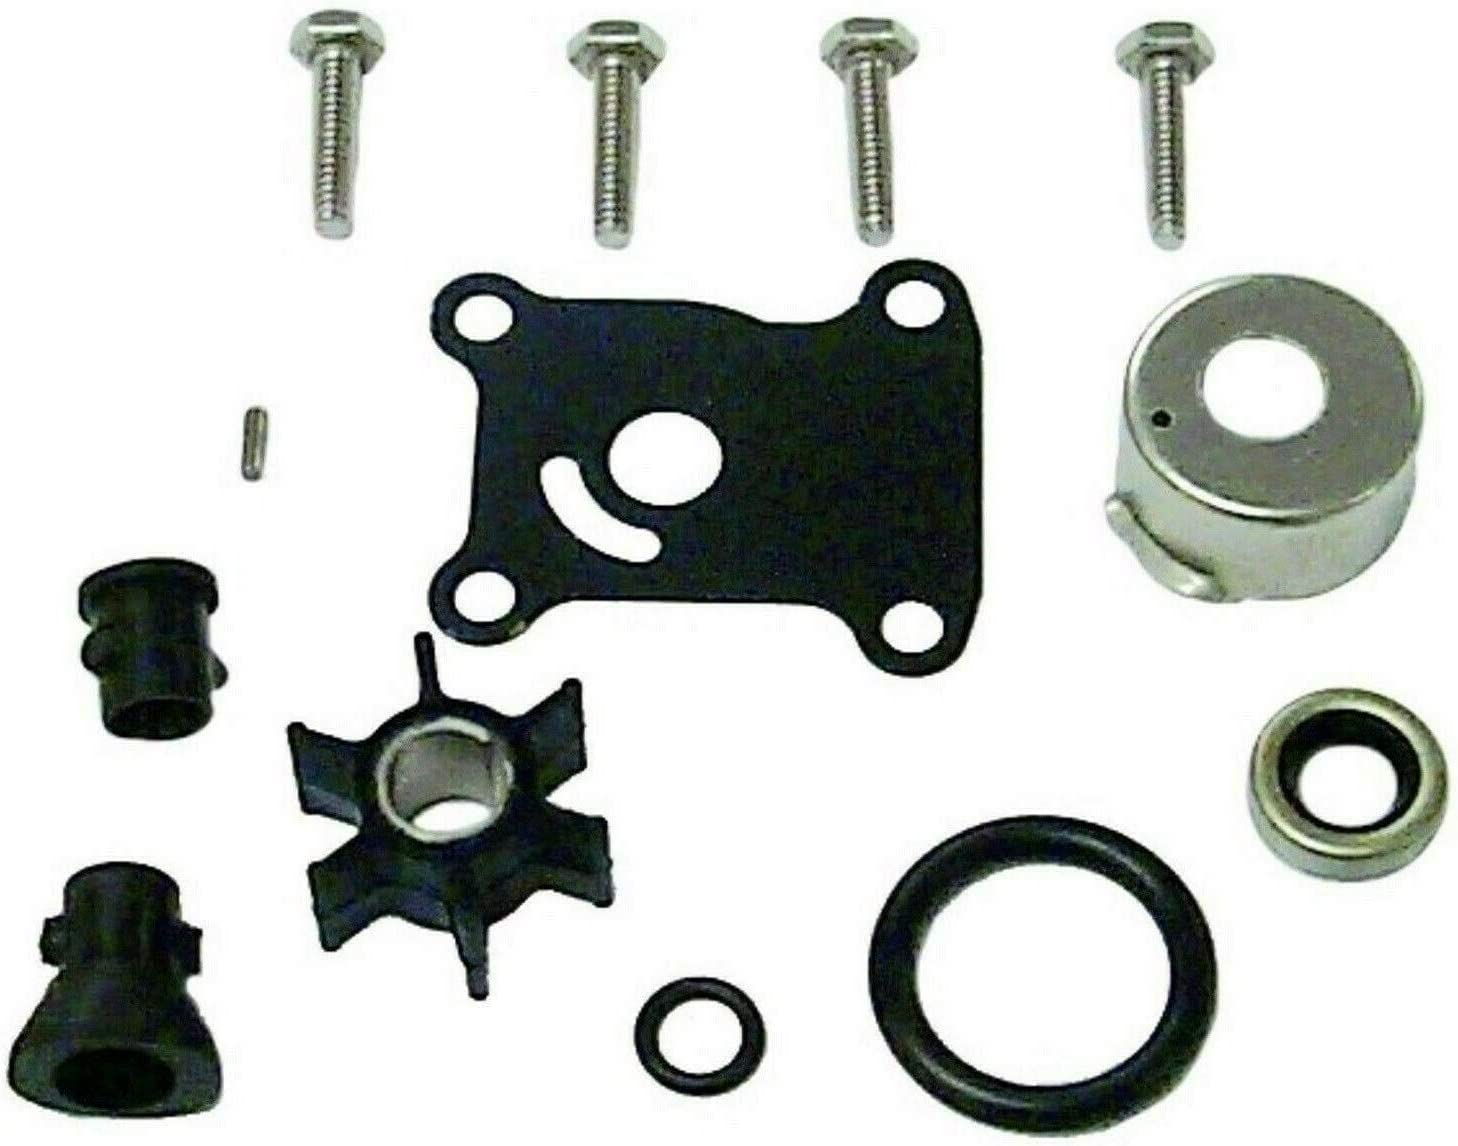 emp Water Pump Kit Without Housing for Johnson Evinrude 9.9, 15 Hp 2 Stroke (1974-1996) & 9.9, 15 Hp 4 Stroke (1995-2001) Replaces 18-3400 391698 Read Product Description for Applications